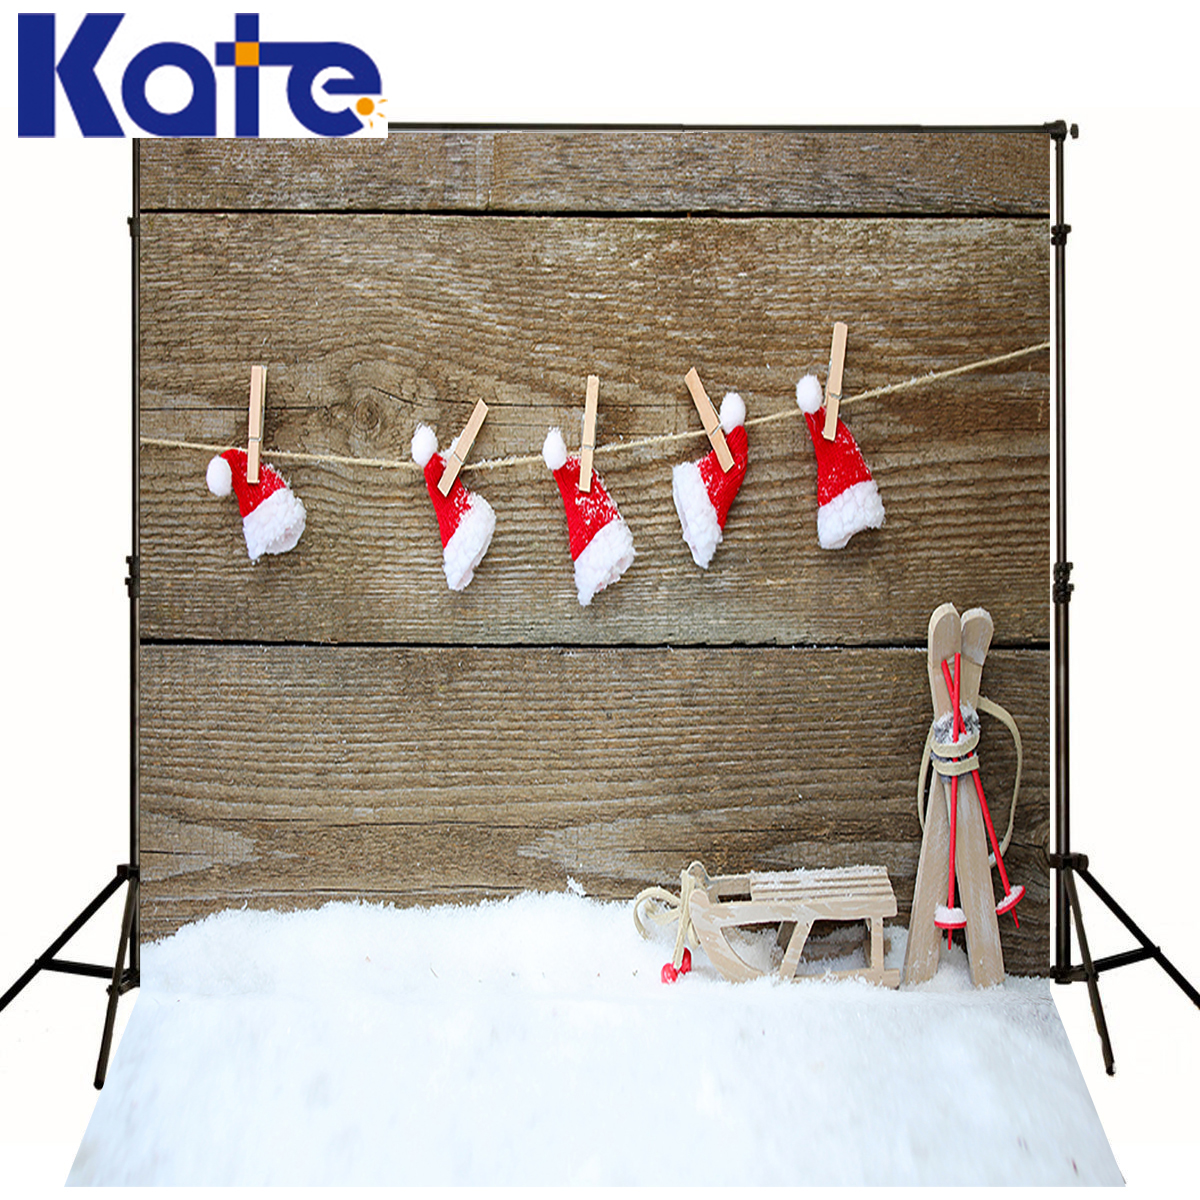 Kate Christmas Background Photography Winter Snow Floor Sled Scenery backdrops Red Hat Wood Wall Backgrounds for photo Studio kate christmas village background cartoon photography backdrop moon backgrounds blue winter background for children shoot